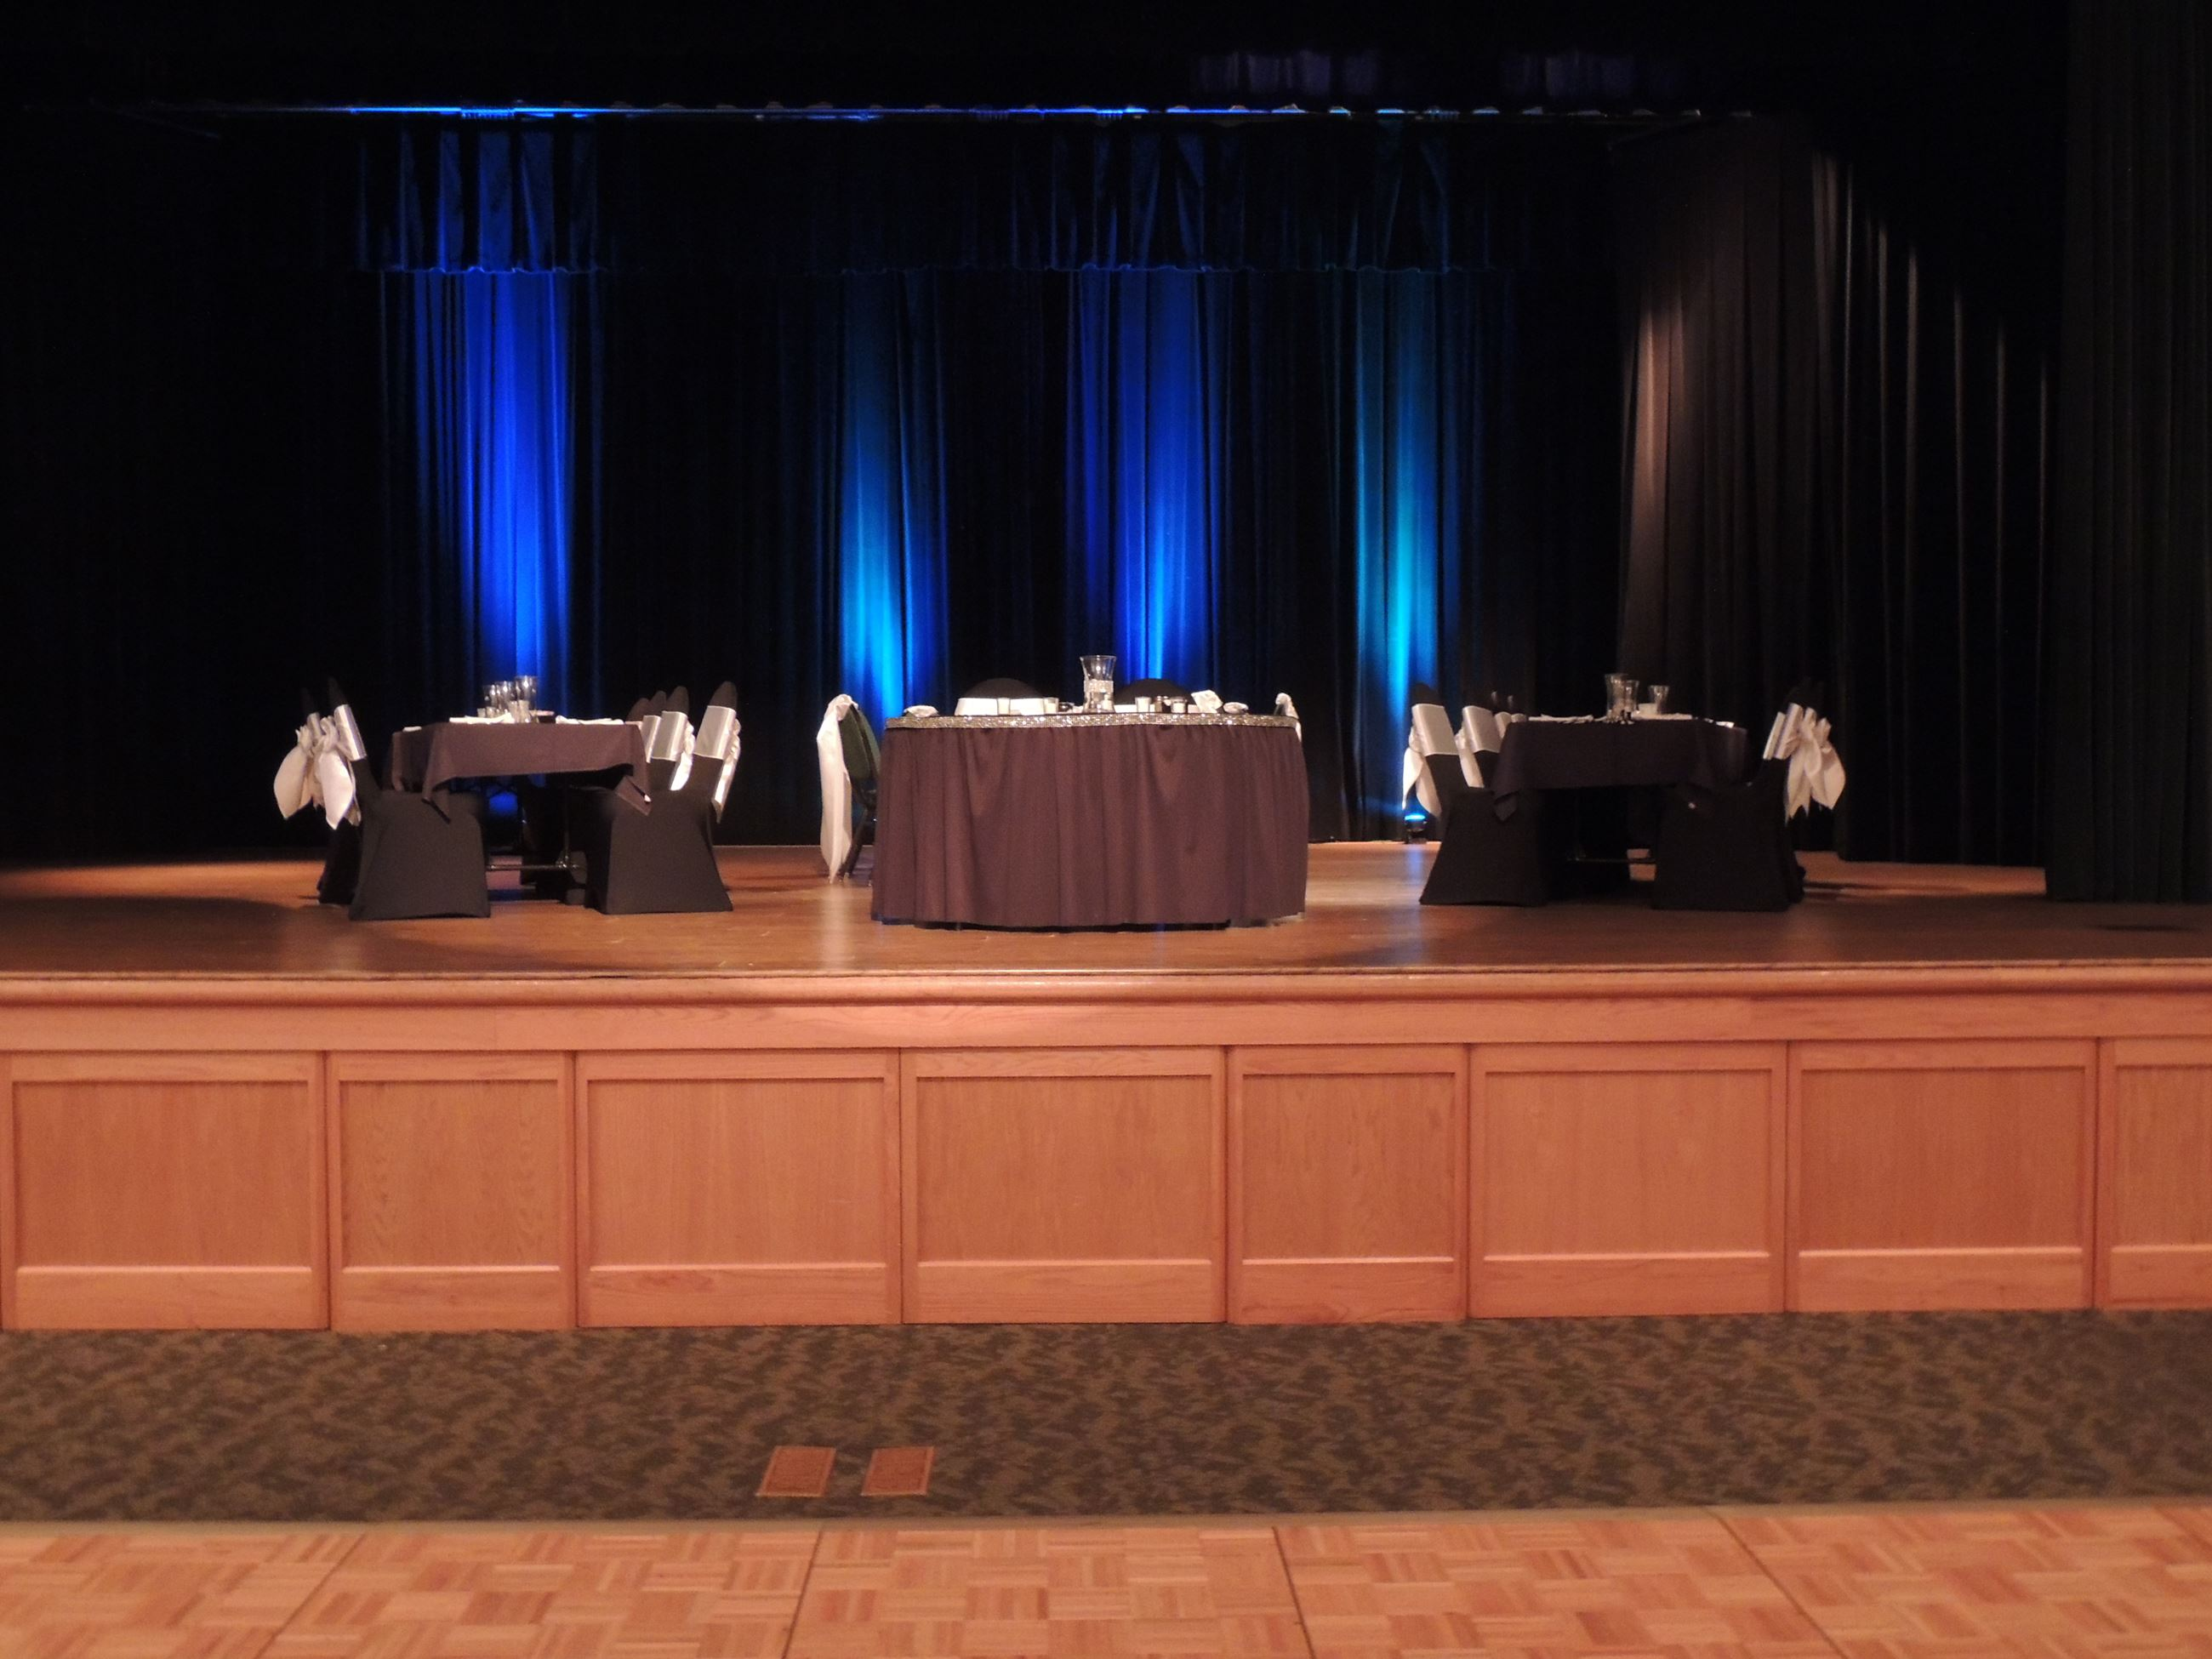 Black & White Head tables on stage